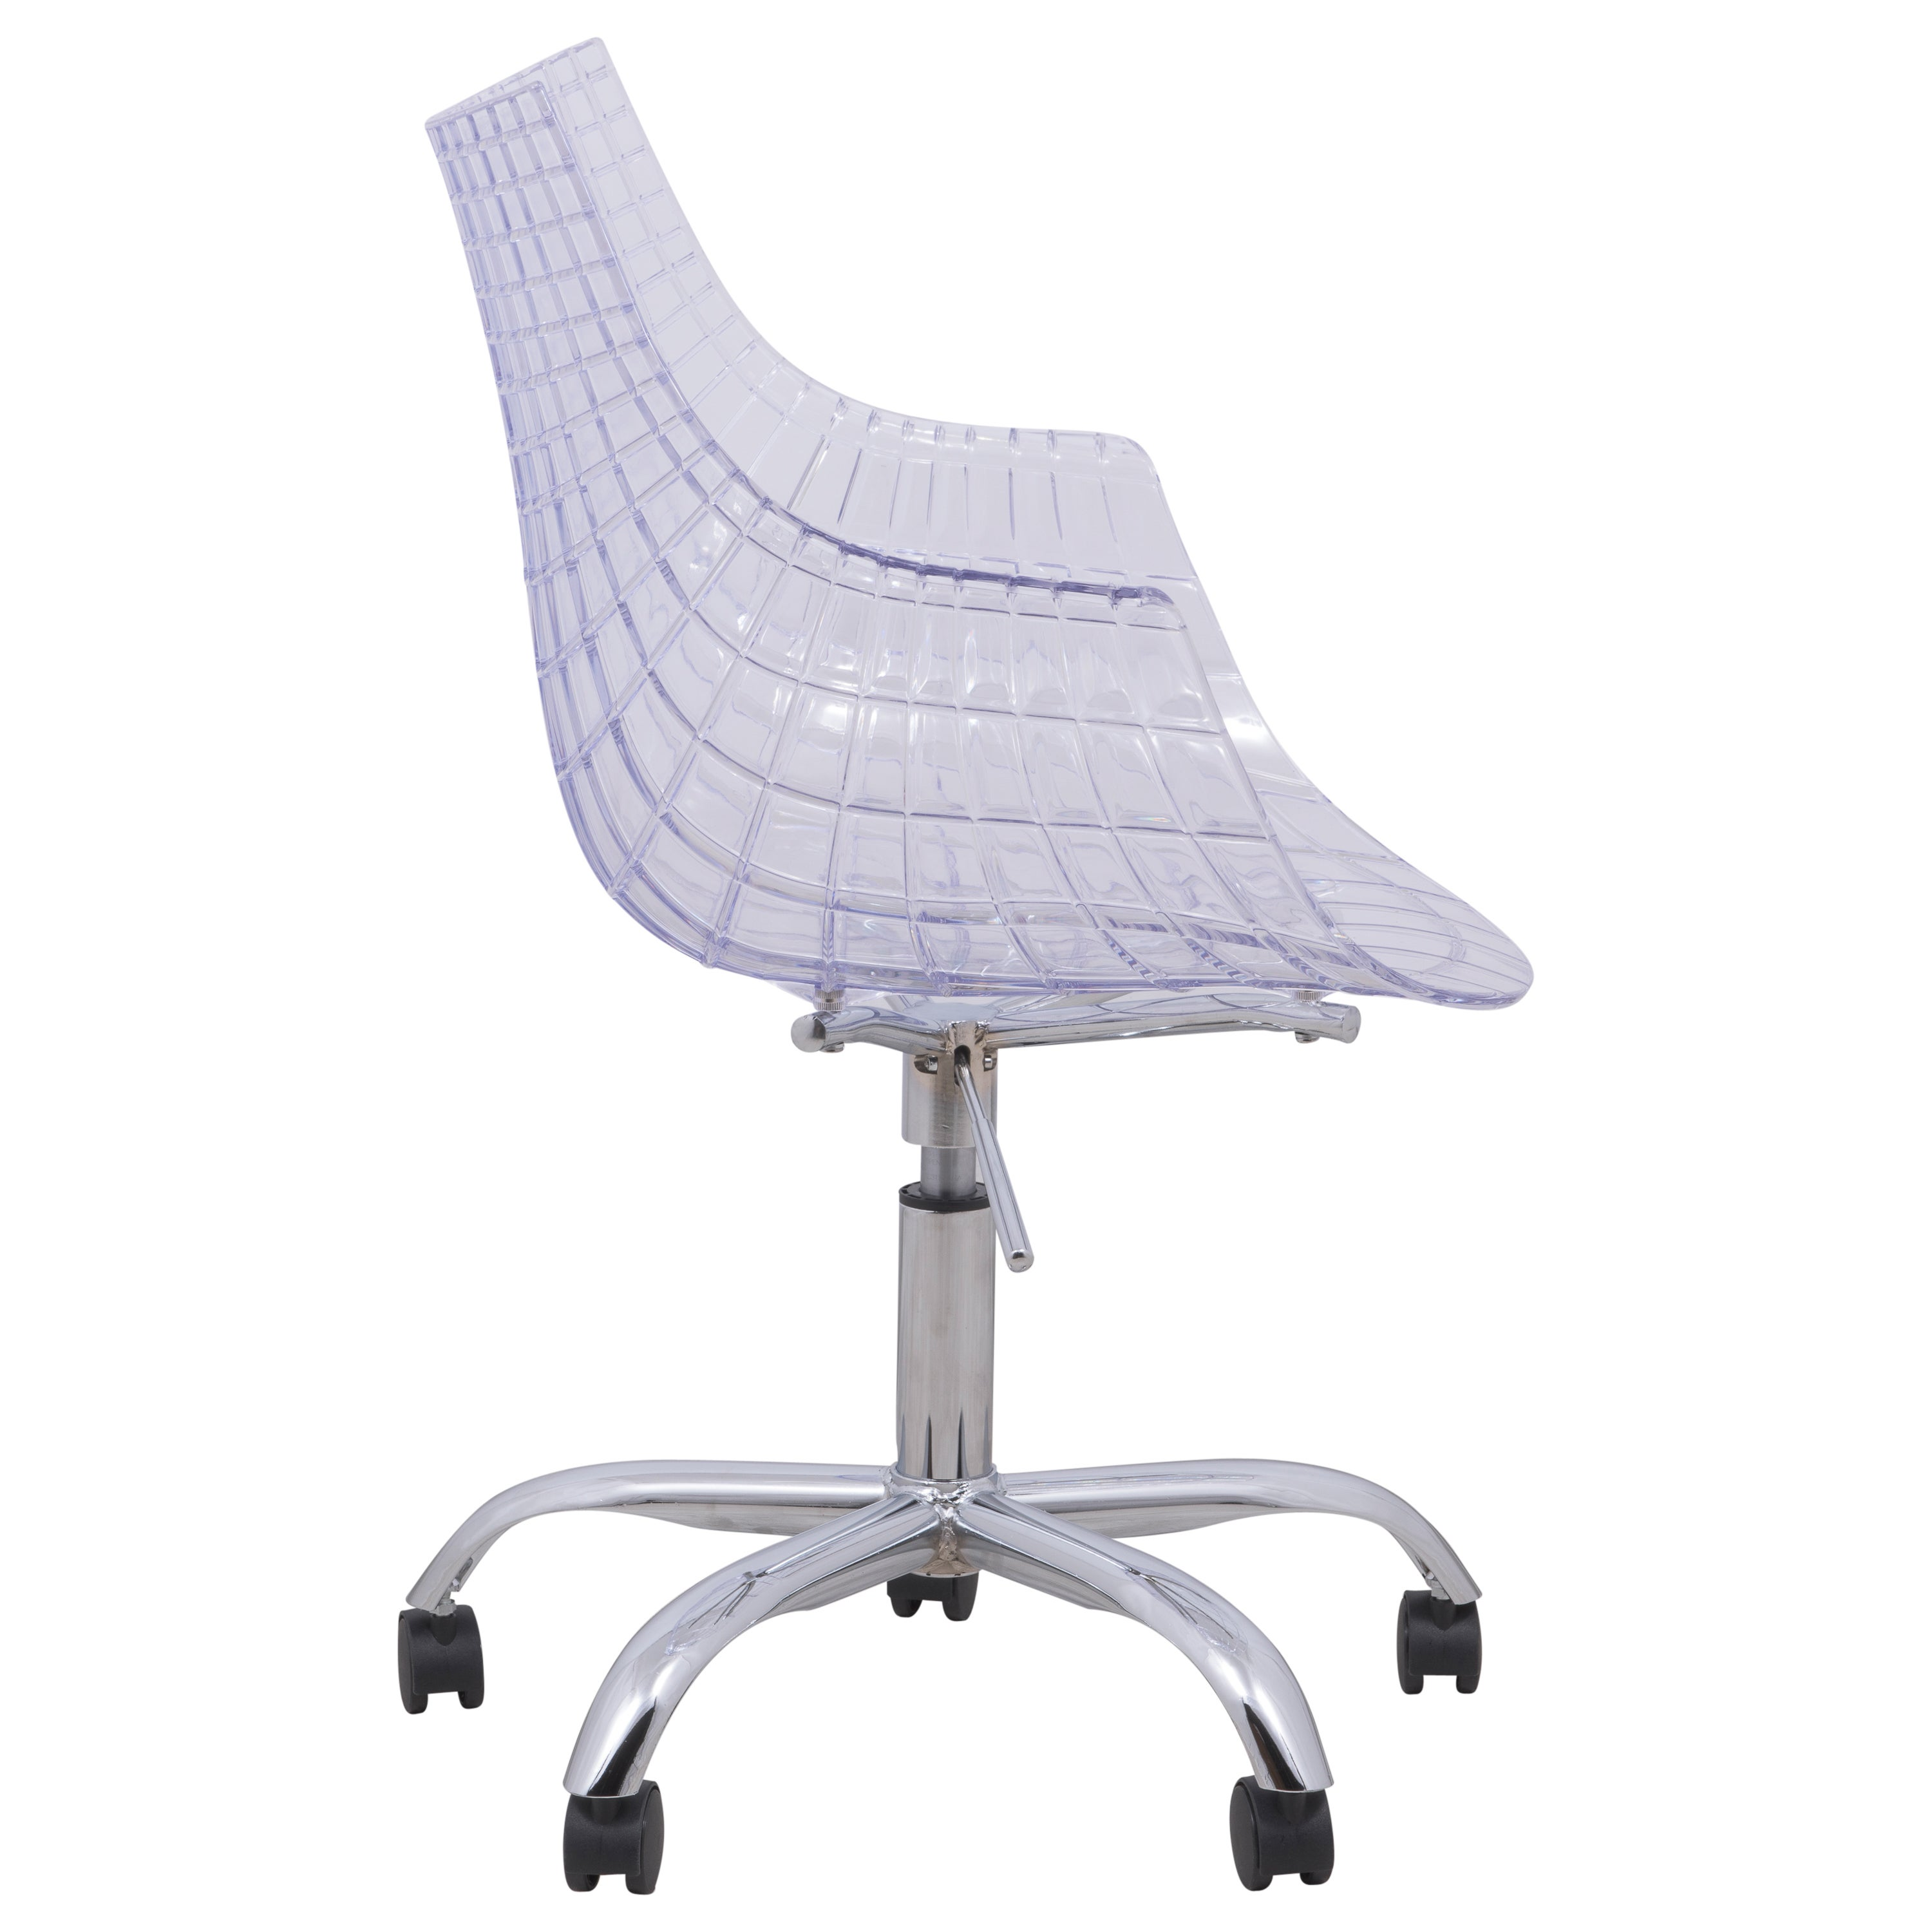 Astounding Leisuremod Ashville Clear Swivel Arm Accent Office Chair With Chromed Legs W Wheels Evergreenethics Interior Chair Design Evergreenethicsorg